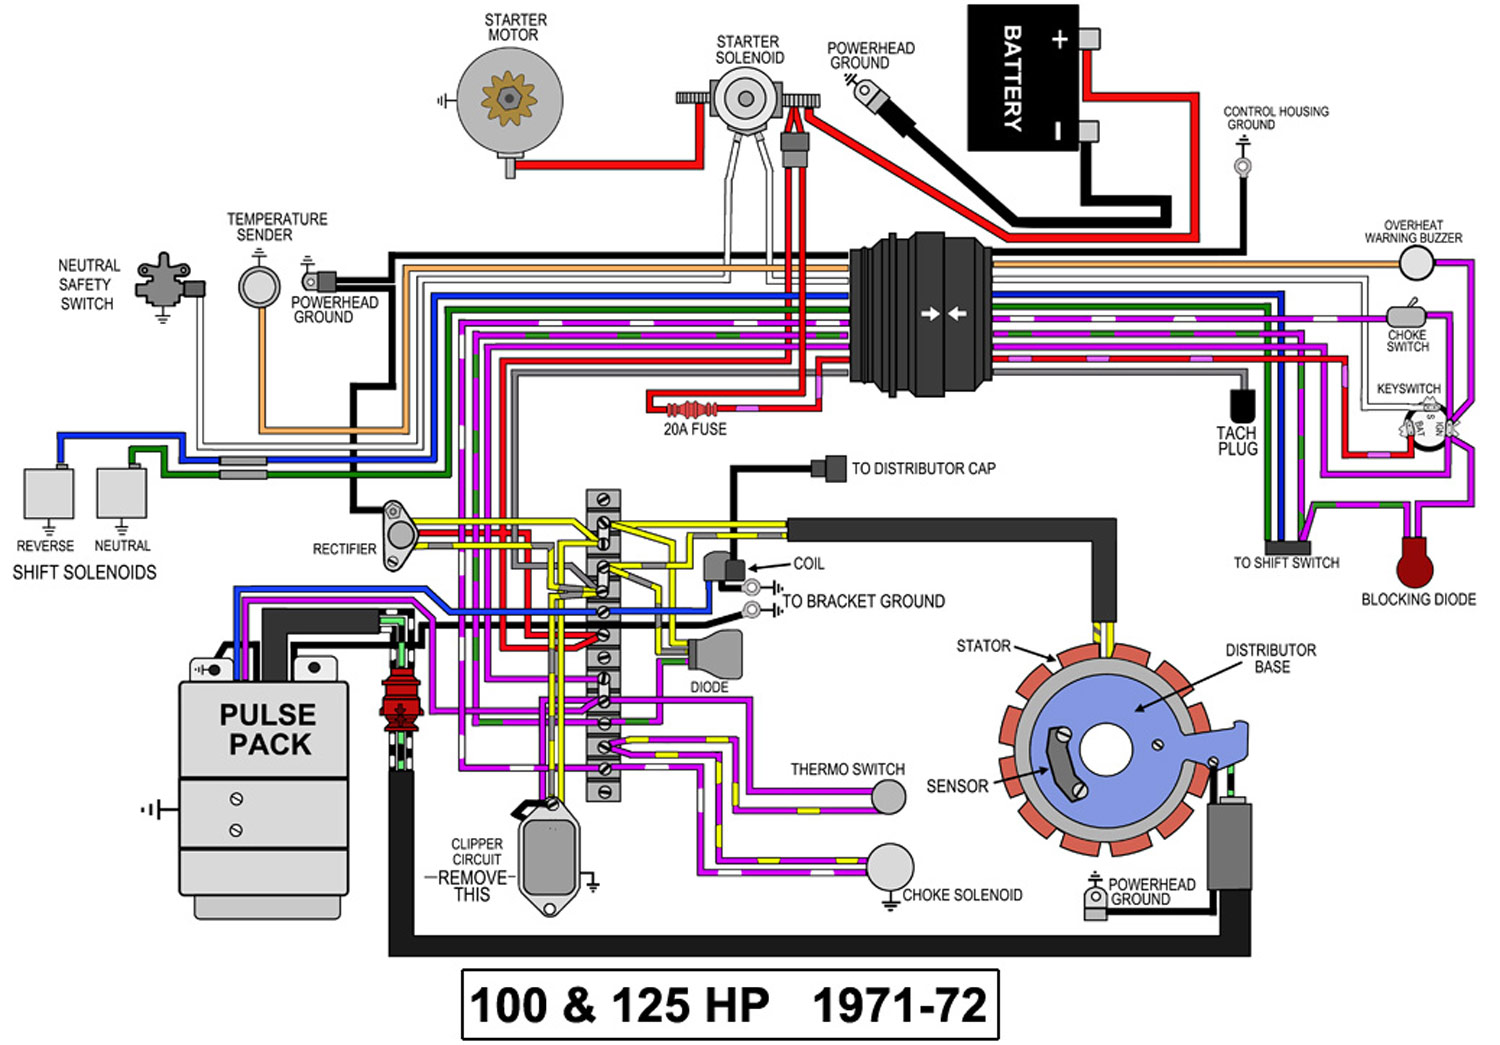 EVINRUDE JOHNSON Outboard Wiring Diagrams -- MASTERTECH MARINE -- on 1985 40 hp wiring diagram, boat trim gauge wiring diagram, eric johnson stratocaster series wiring diagram, 1977 evinrude wiring diagram, switch wiring diagram, 1995 johnson outboard engine, johnson wiring harness diagram, fuel gauge wiring diagram, 25 hp johnson outboard diagram, mercury 1150 wiring diagram, lace sensor wiring diagram, 50 hp evinrude wiring diagram, 35 hp evinrude wiring diagram, johnson outboard motor diagram,